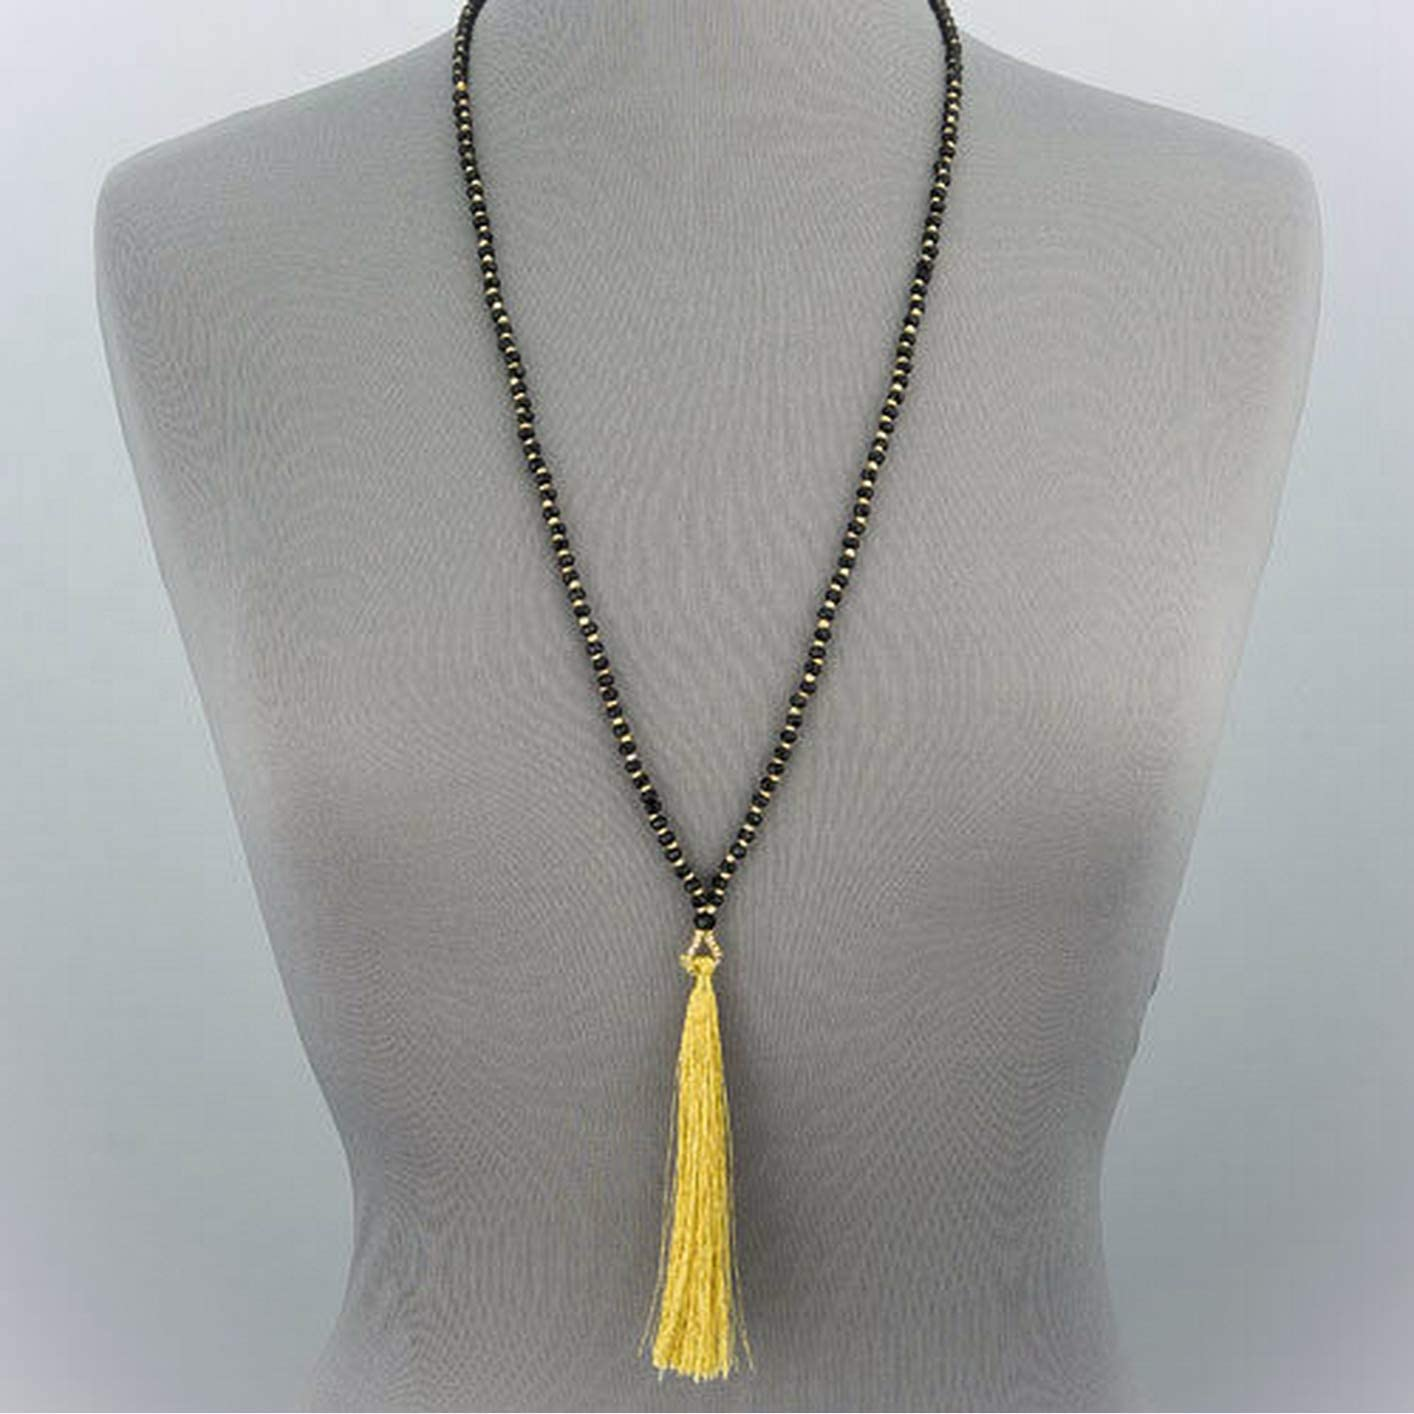 Black Faceted Stone Beads Gold Color Tassel Statement Necklace Amazing Accessories for Your Perfect and Fashion Look by CharmingSS